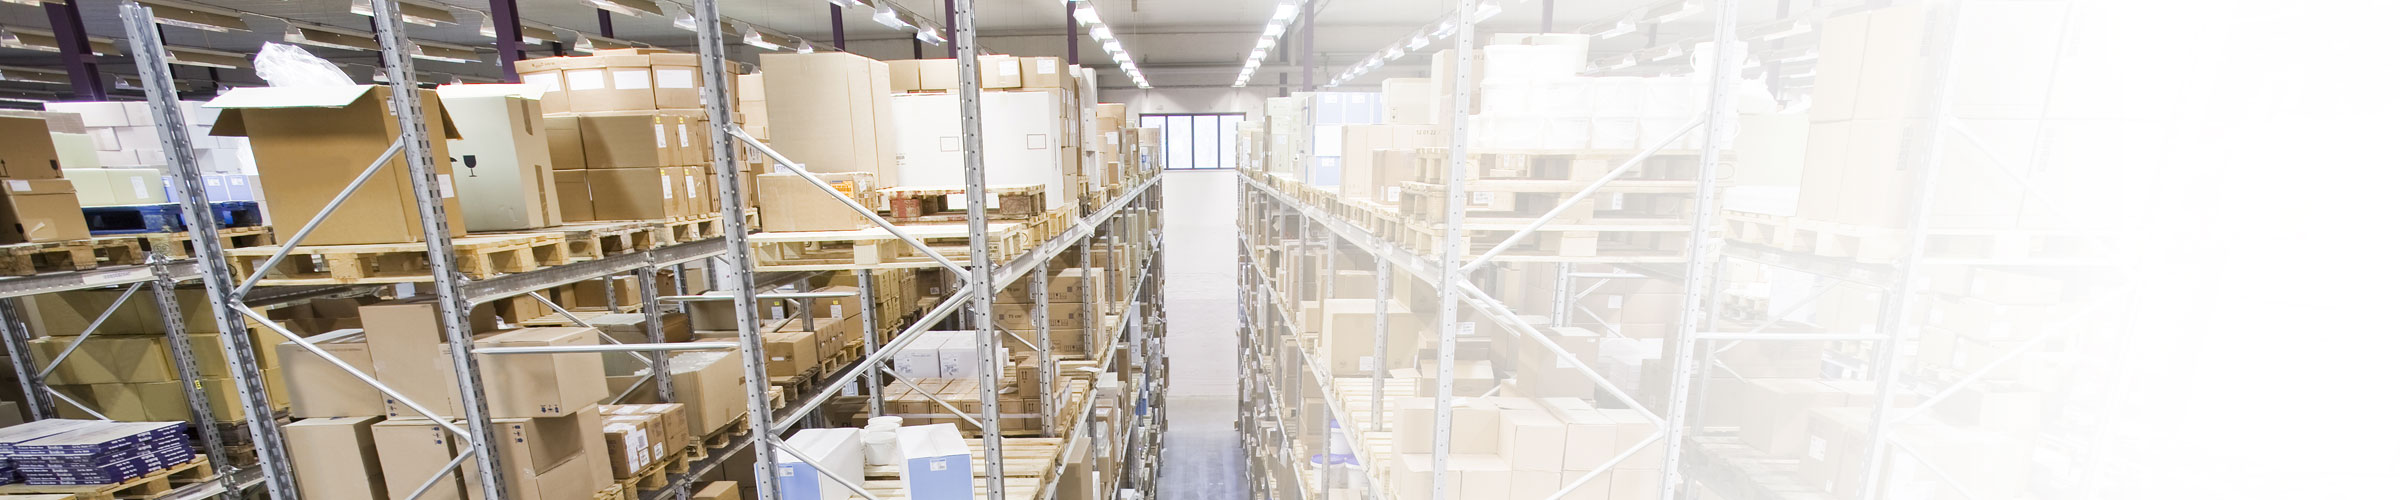 surveillance camera indoor warehouse application